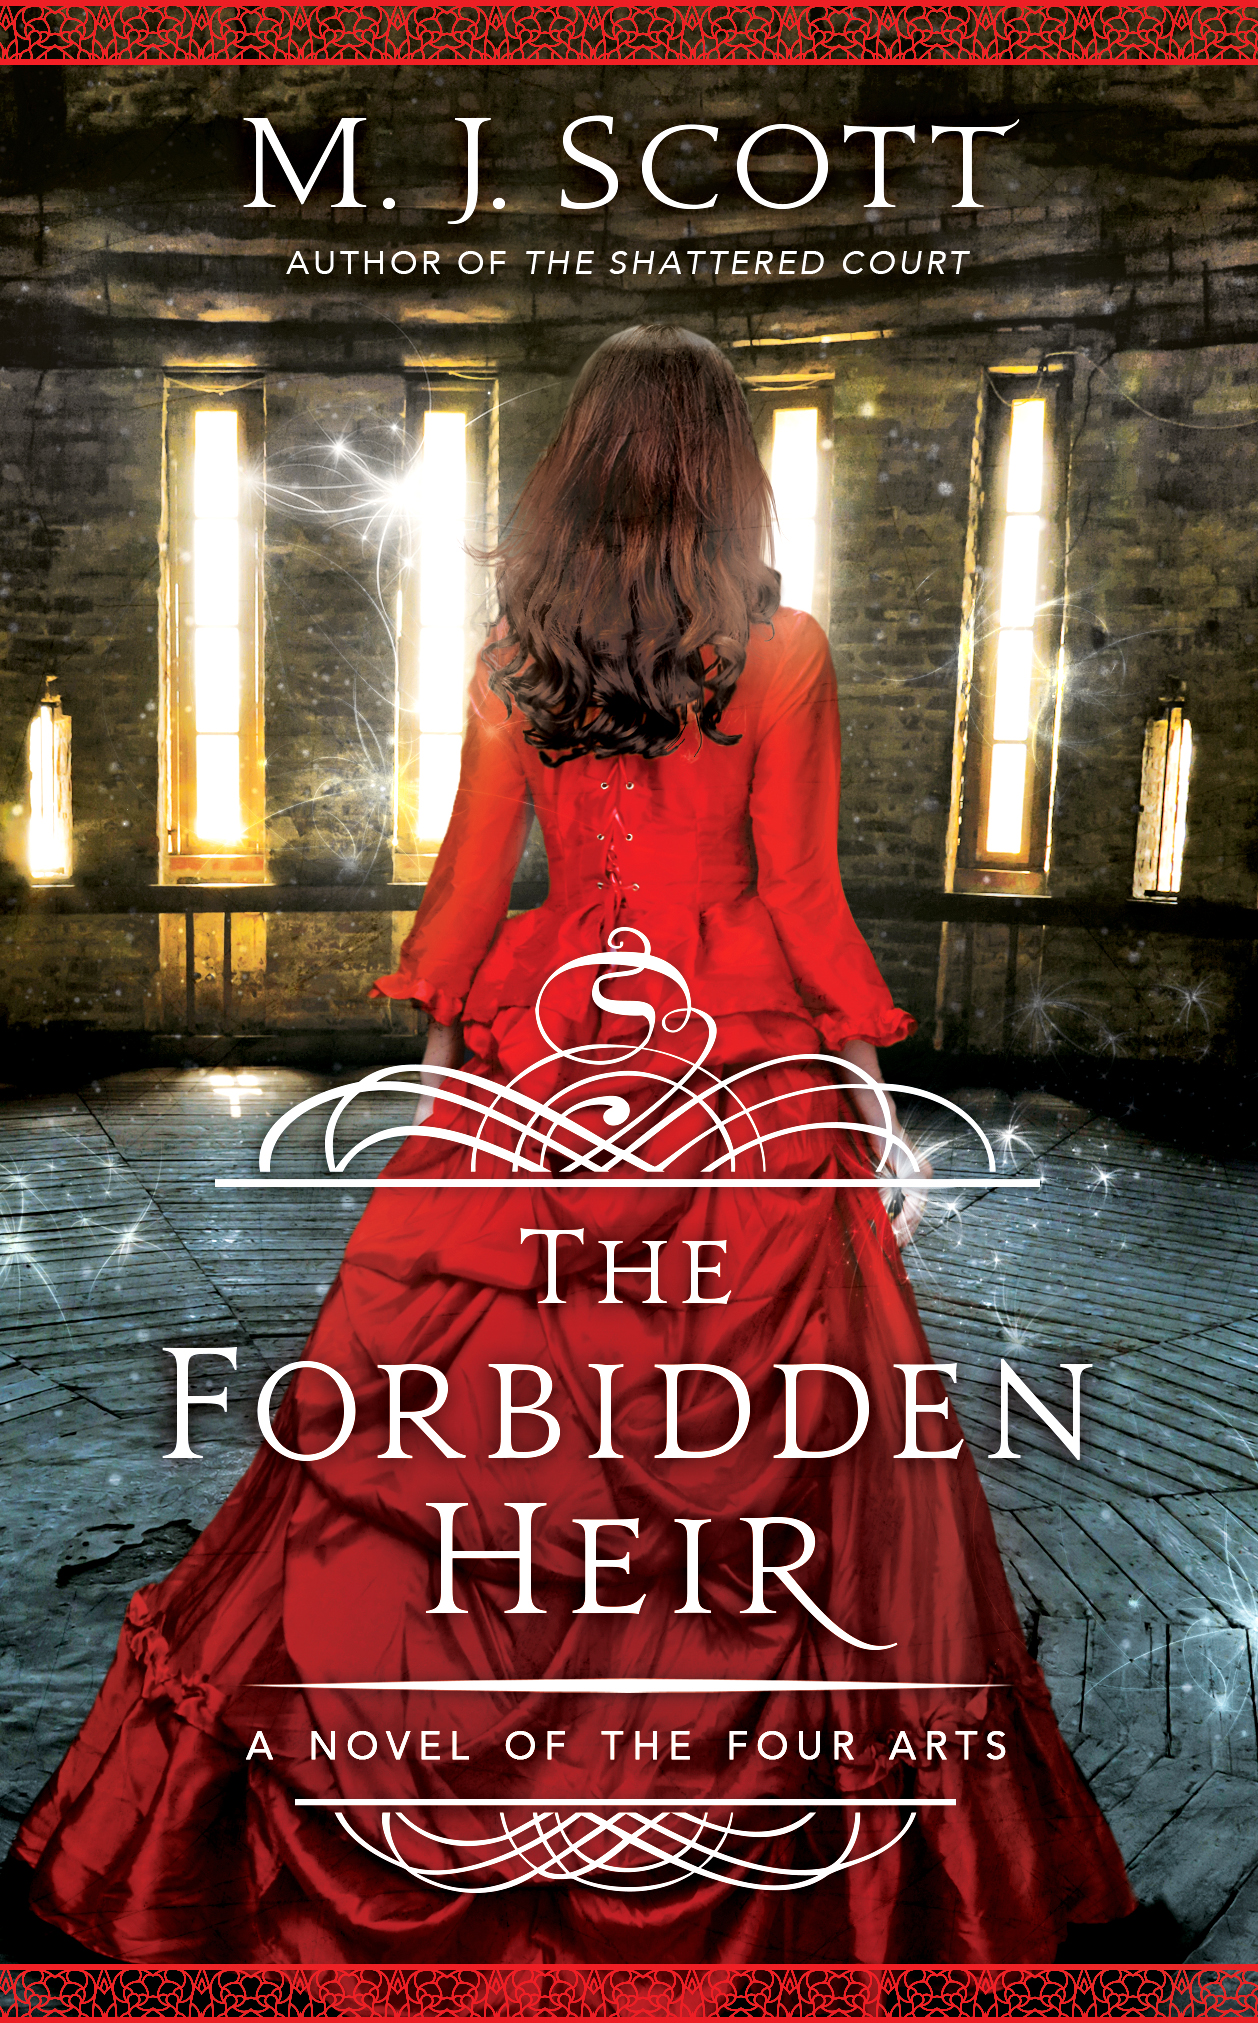 The Forbidden Heir is up for pre-order